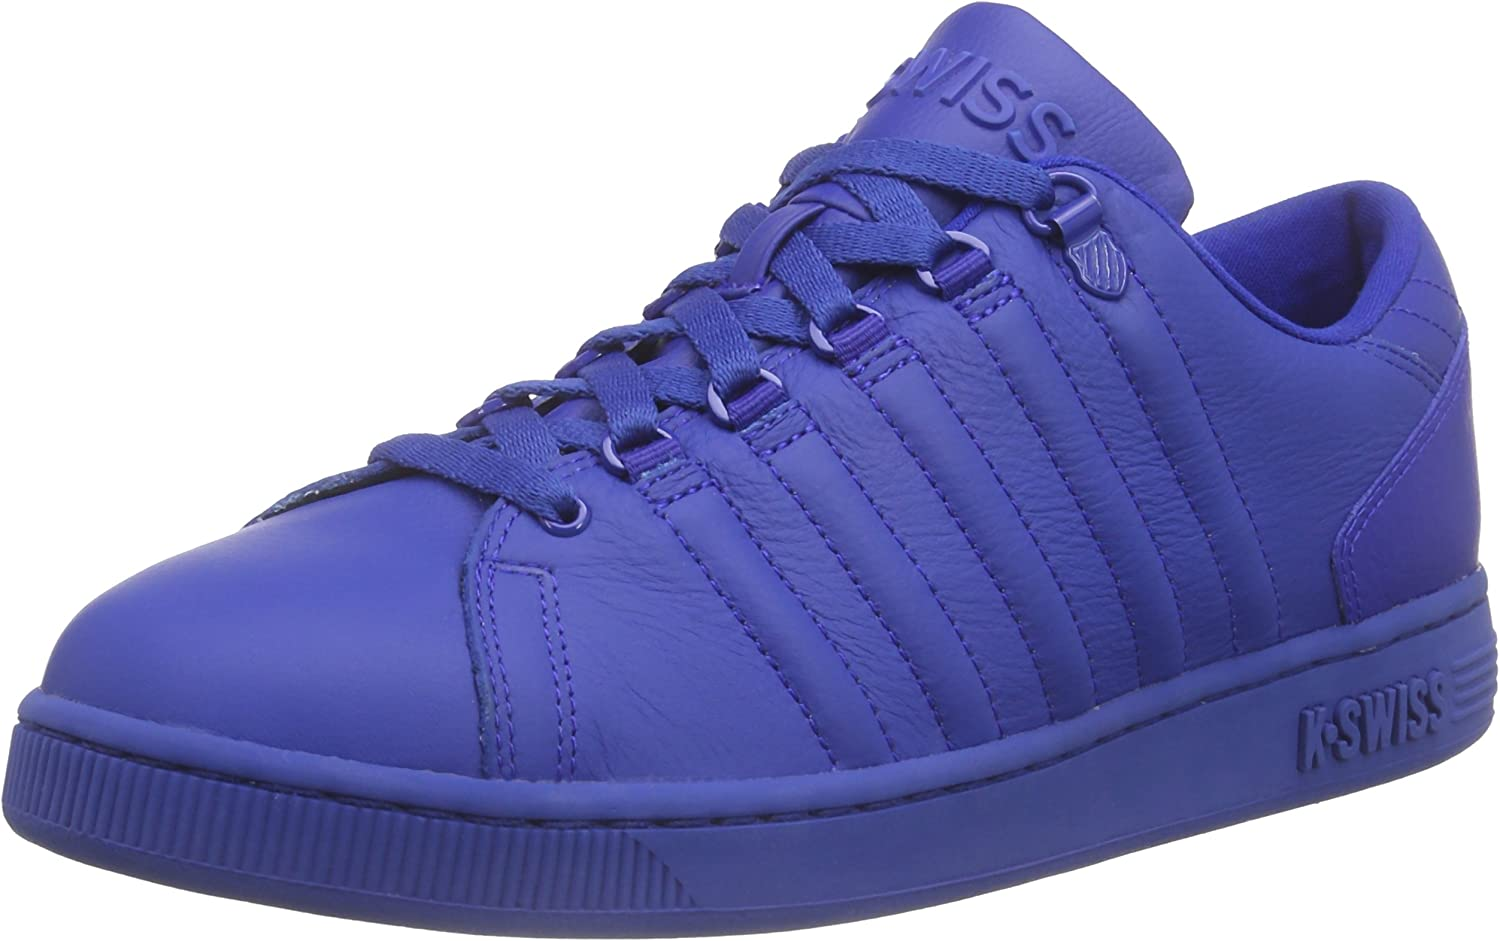 K-Swiss Lozan Iii Monochrome, Men's Low-Top Sneakers